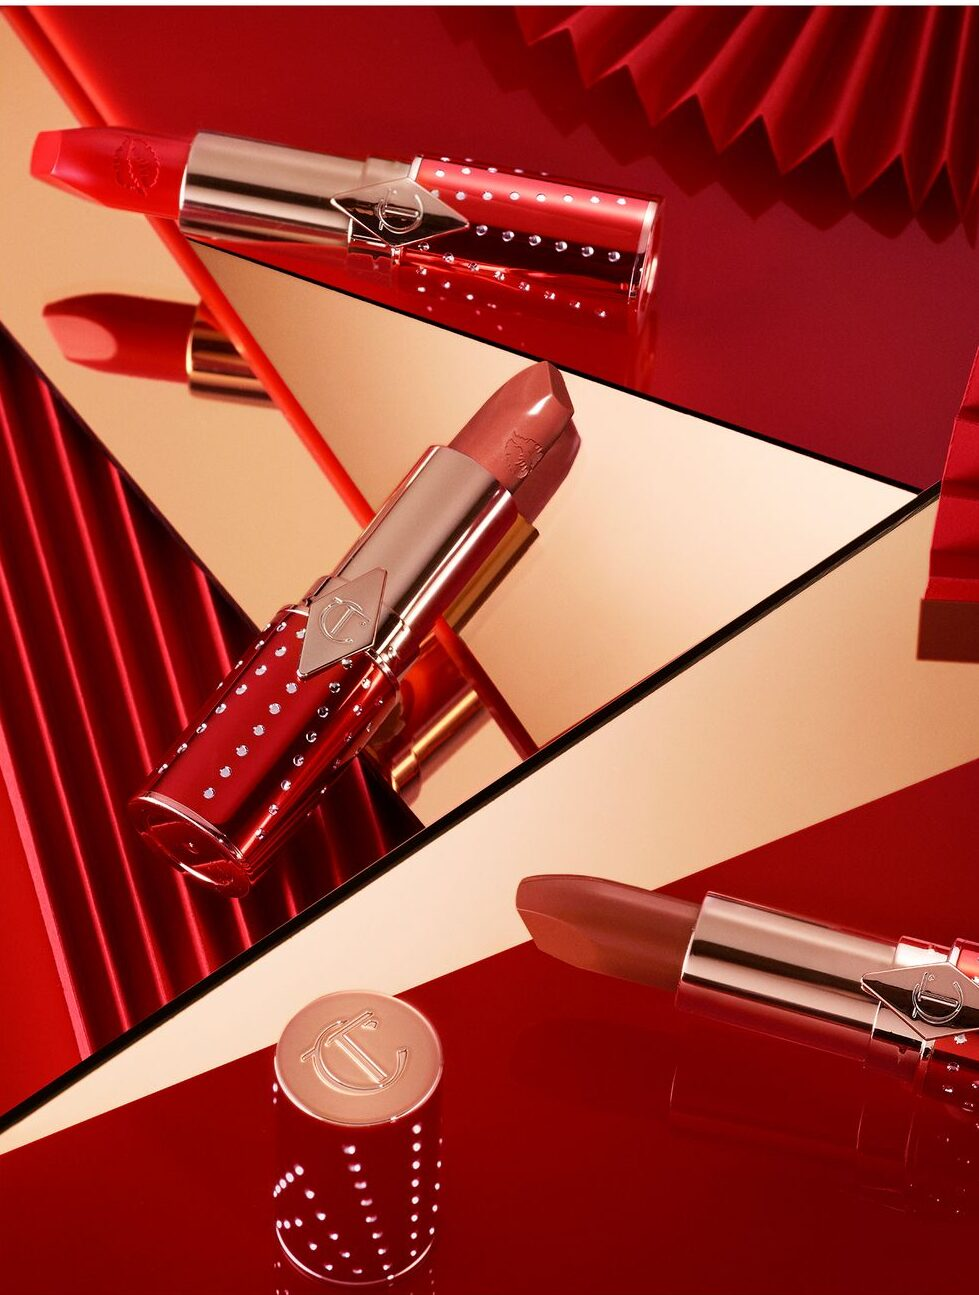 Charlotte Tilbury Lunar New Year Lipstick Collection 2021